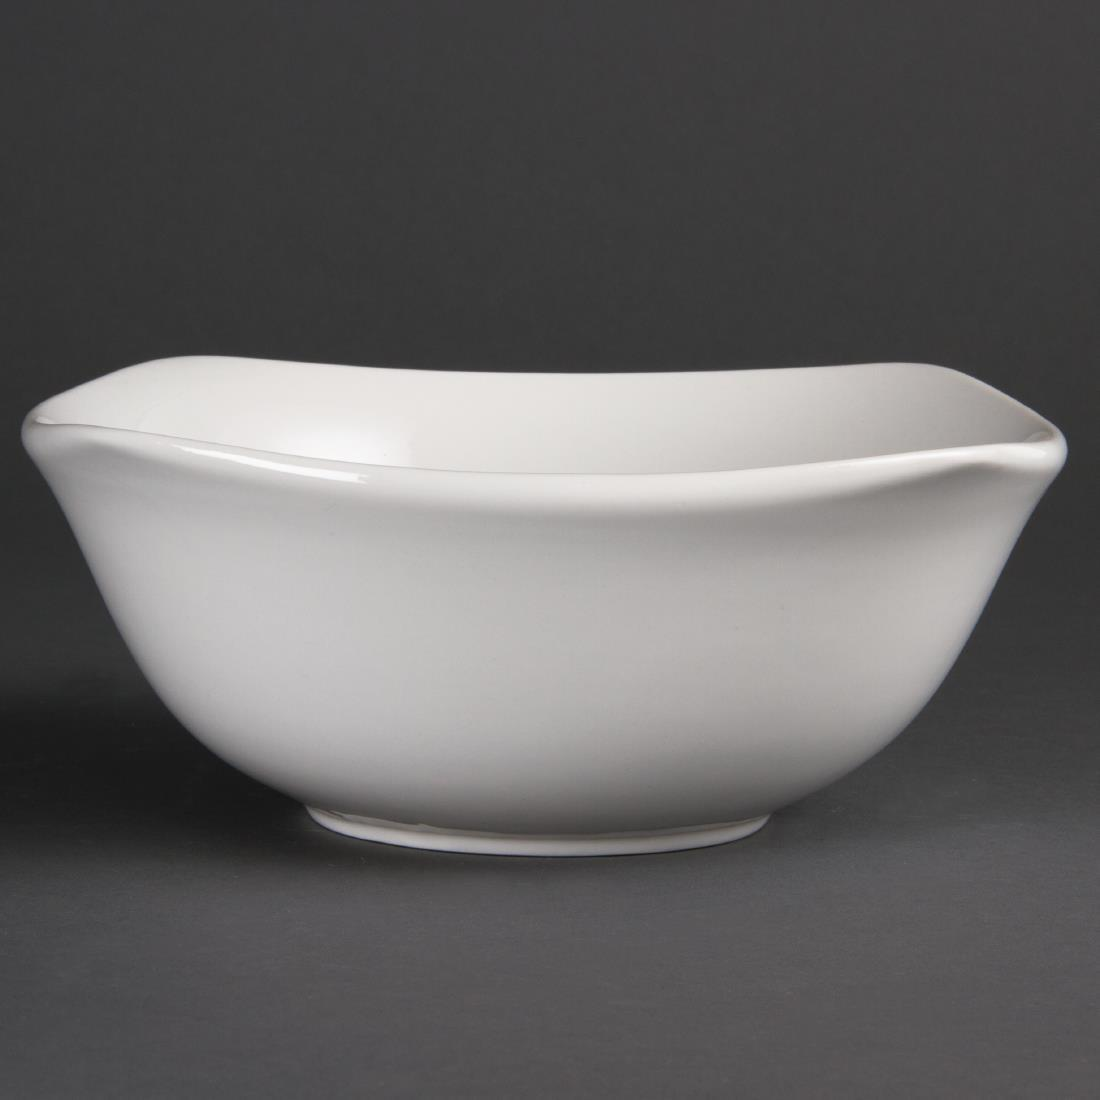 Olympia Whiteware Rounded Square Bowls 220mm